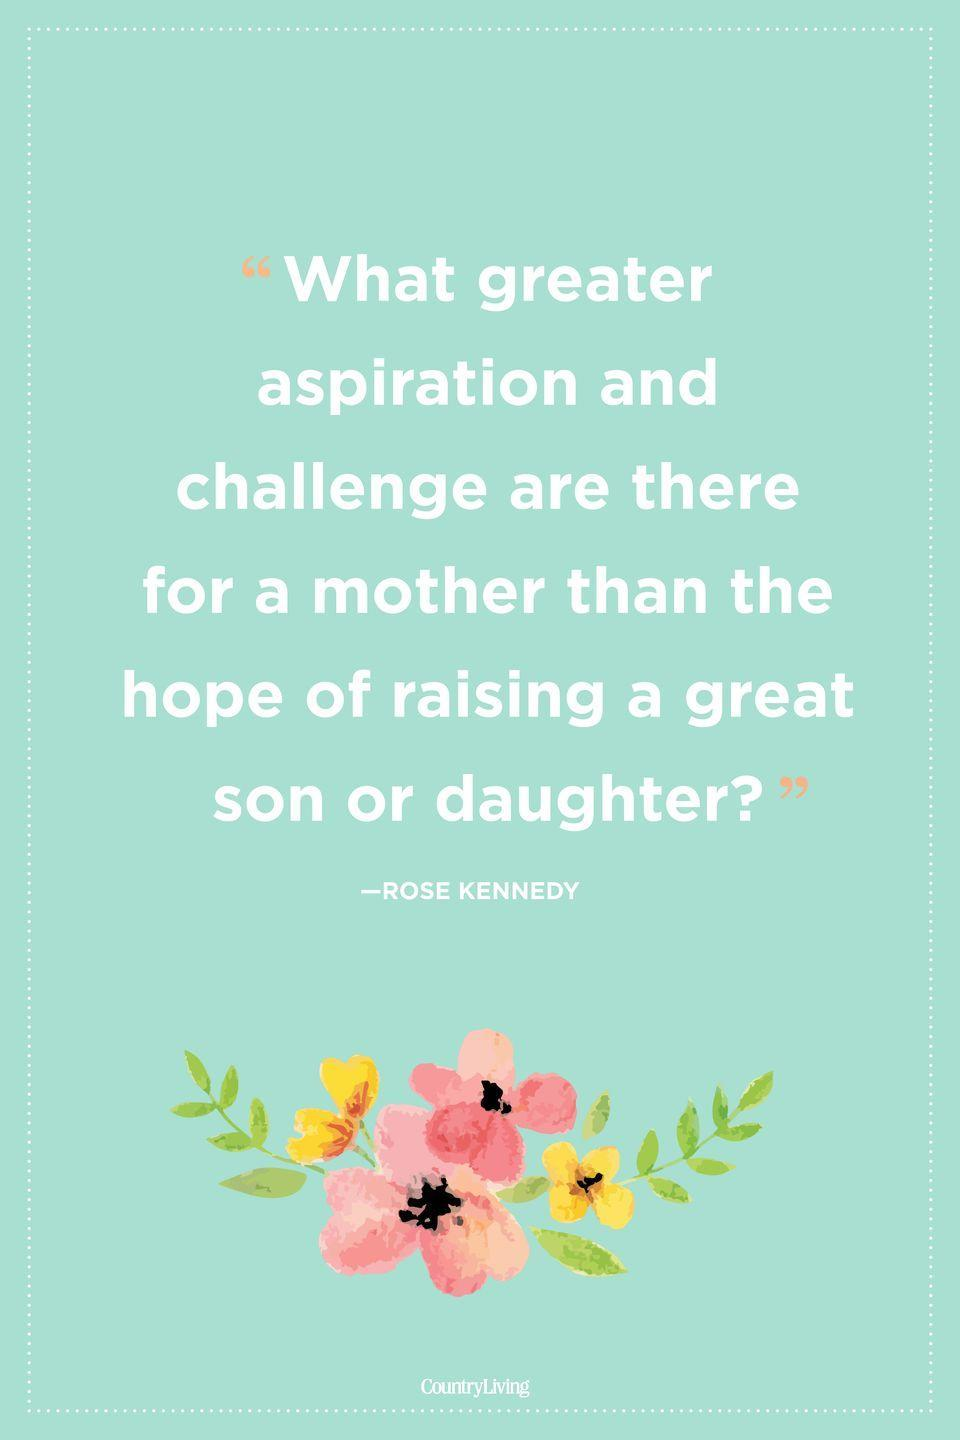 "<p>""What greater aspiration and challenge are there for a mother than the hope of raising a great son or daughter?""</p>"